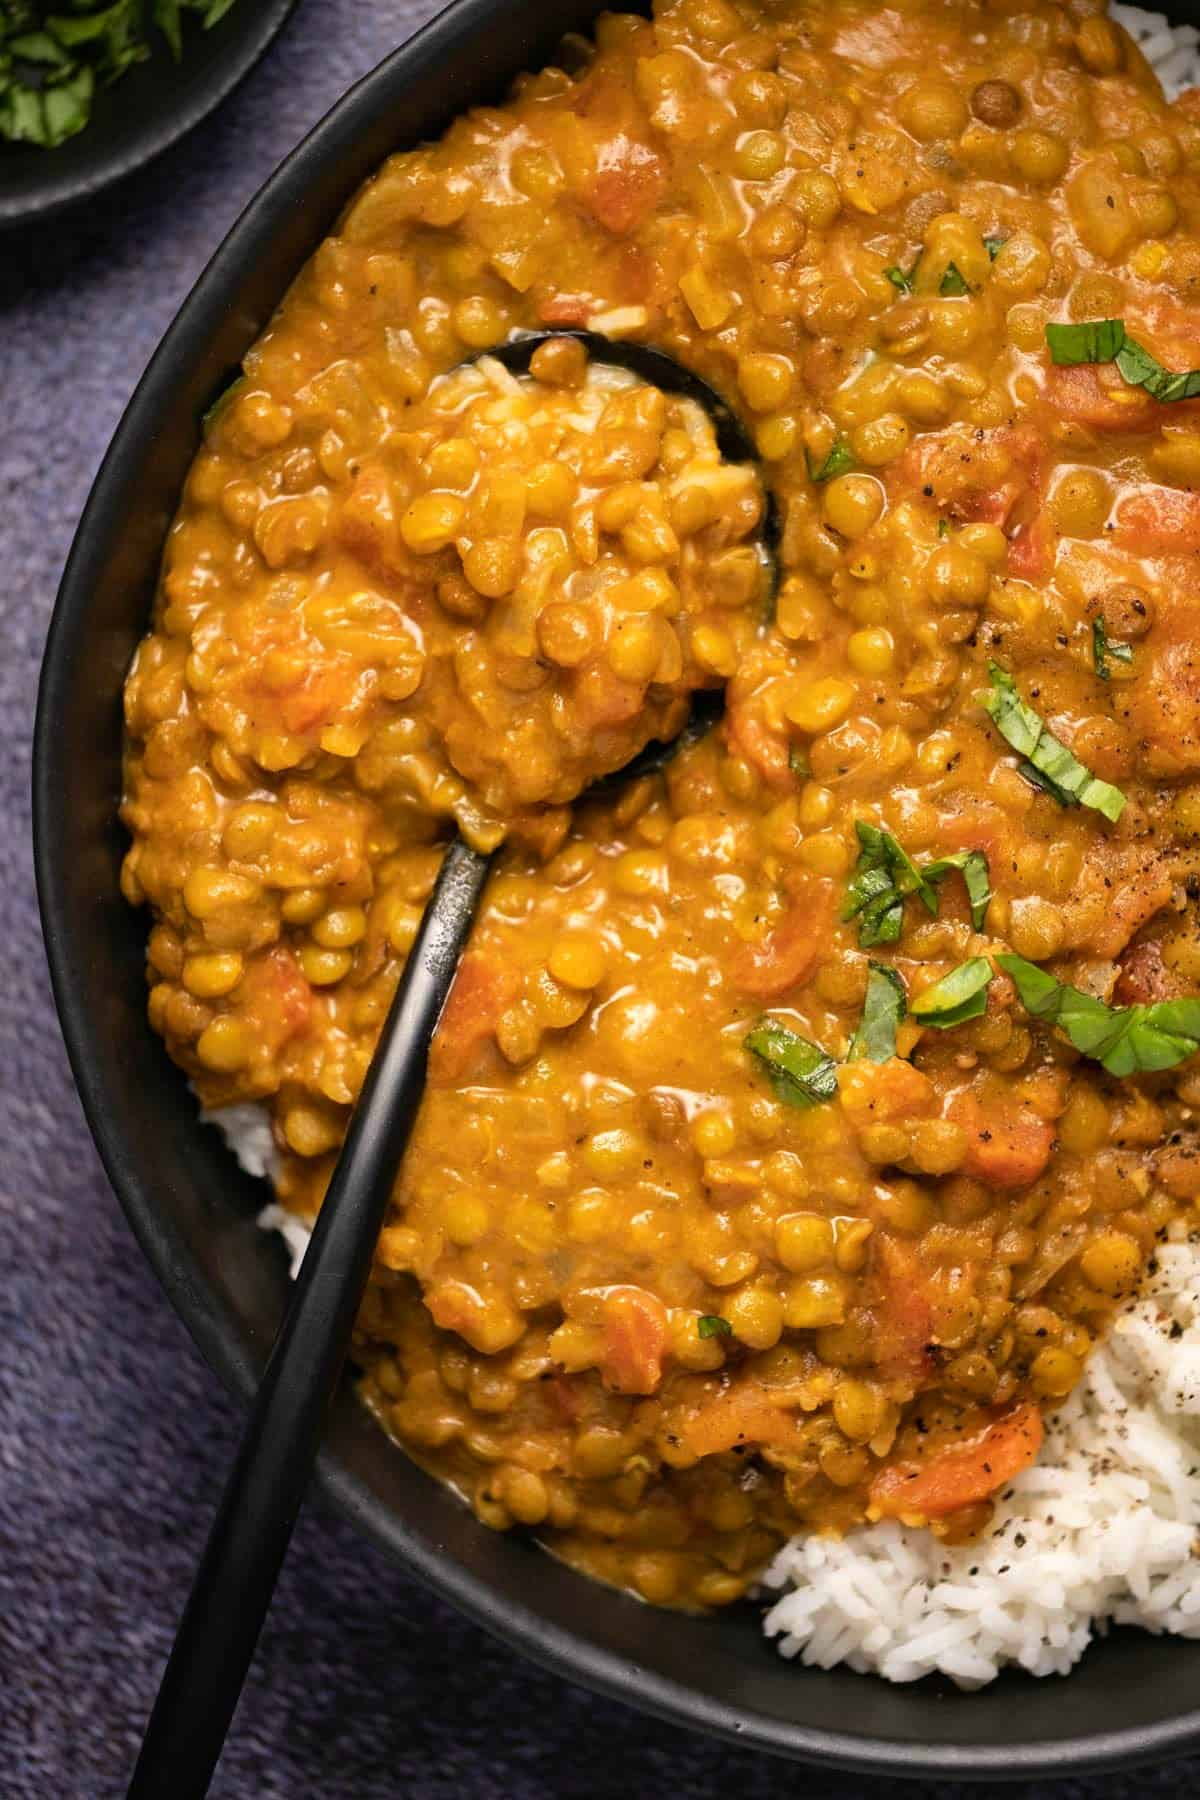 Lentil curry with rice in a black bowl with a spoon.